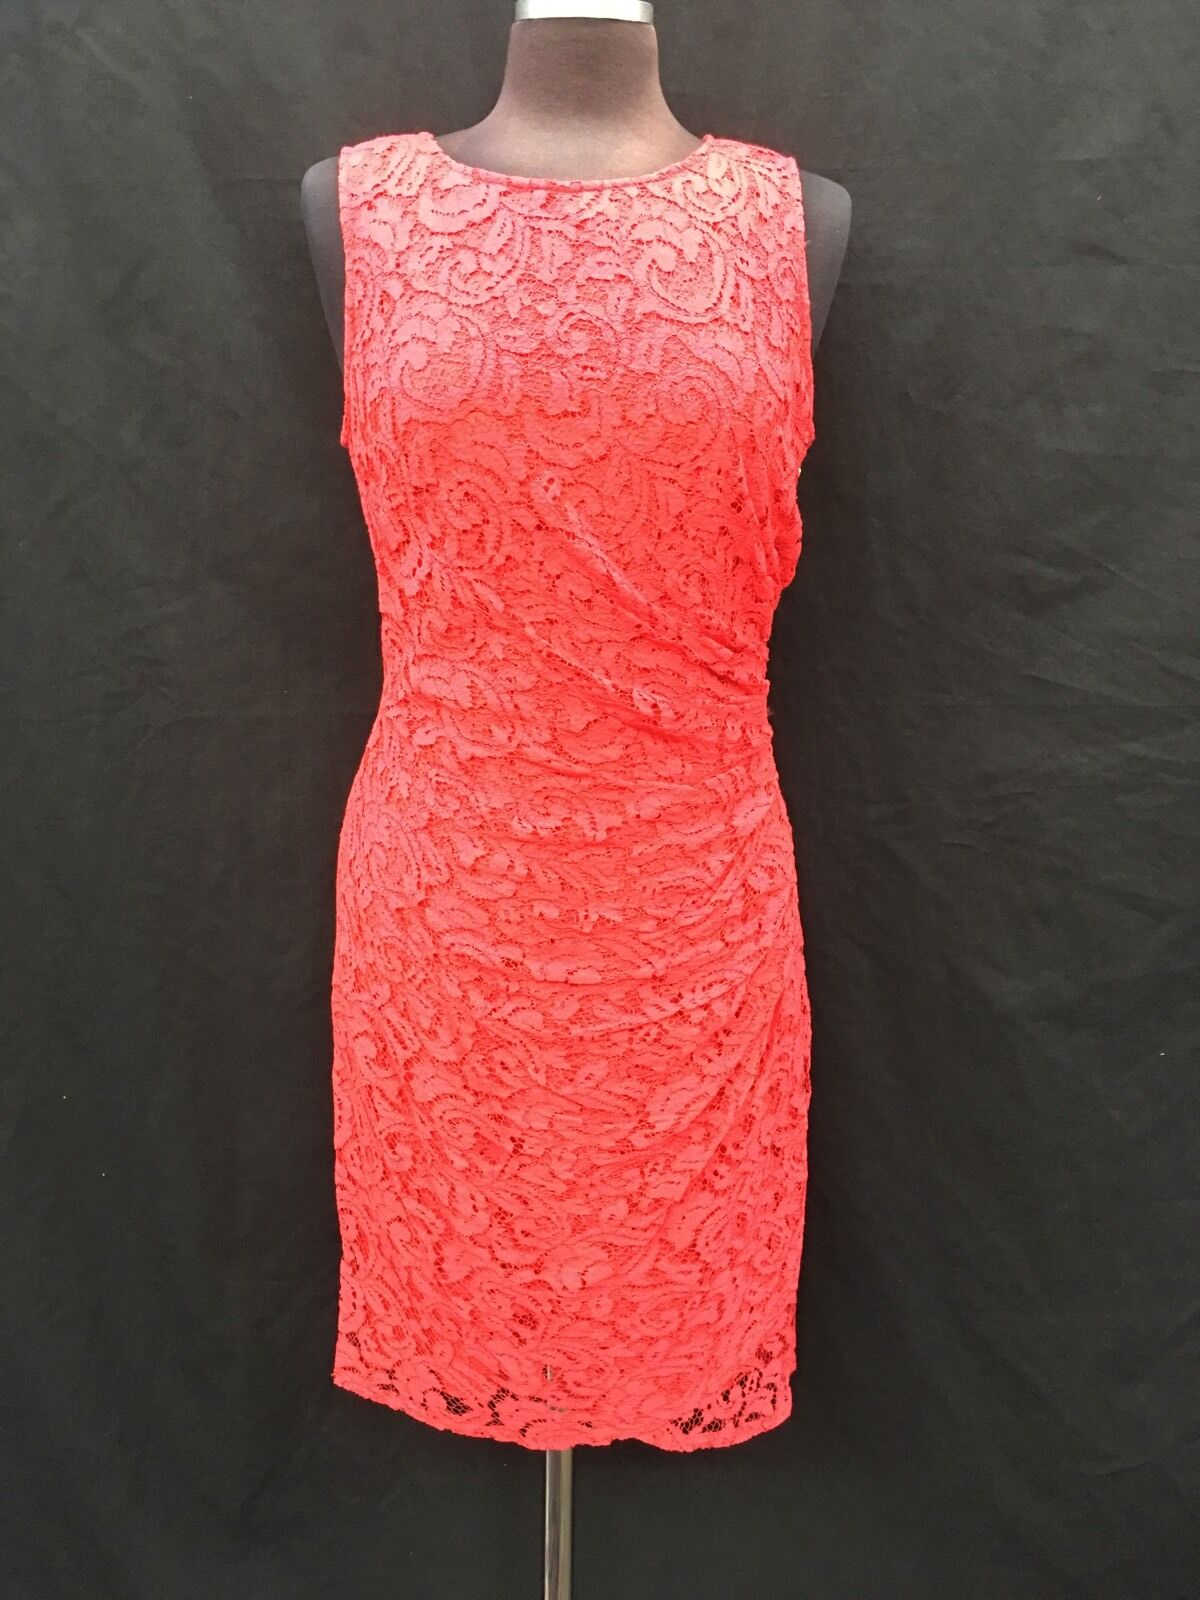 ADRIANNA PAPELL DRESS RED LACE DRESS RETAIL SIZE12 LENGTH 41